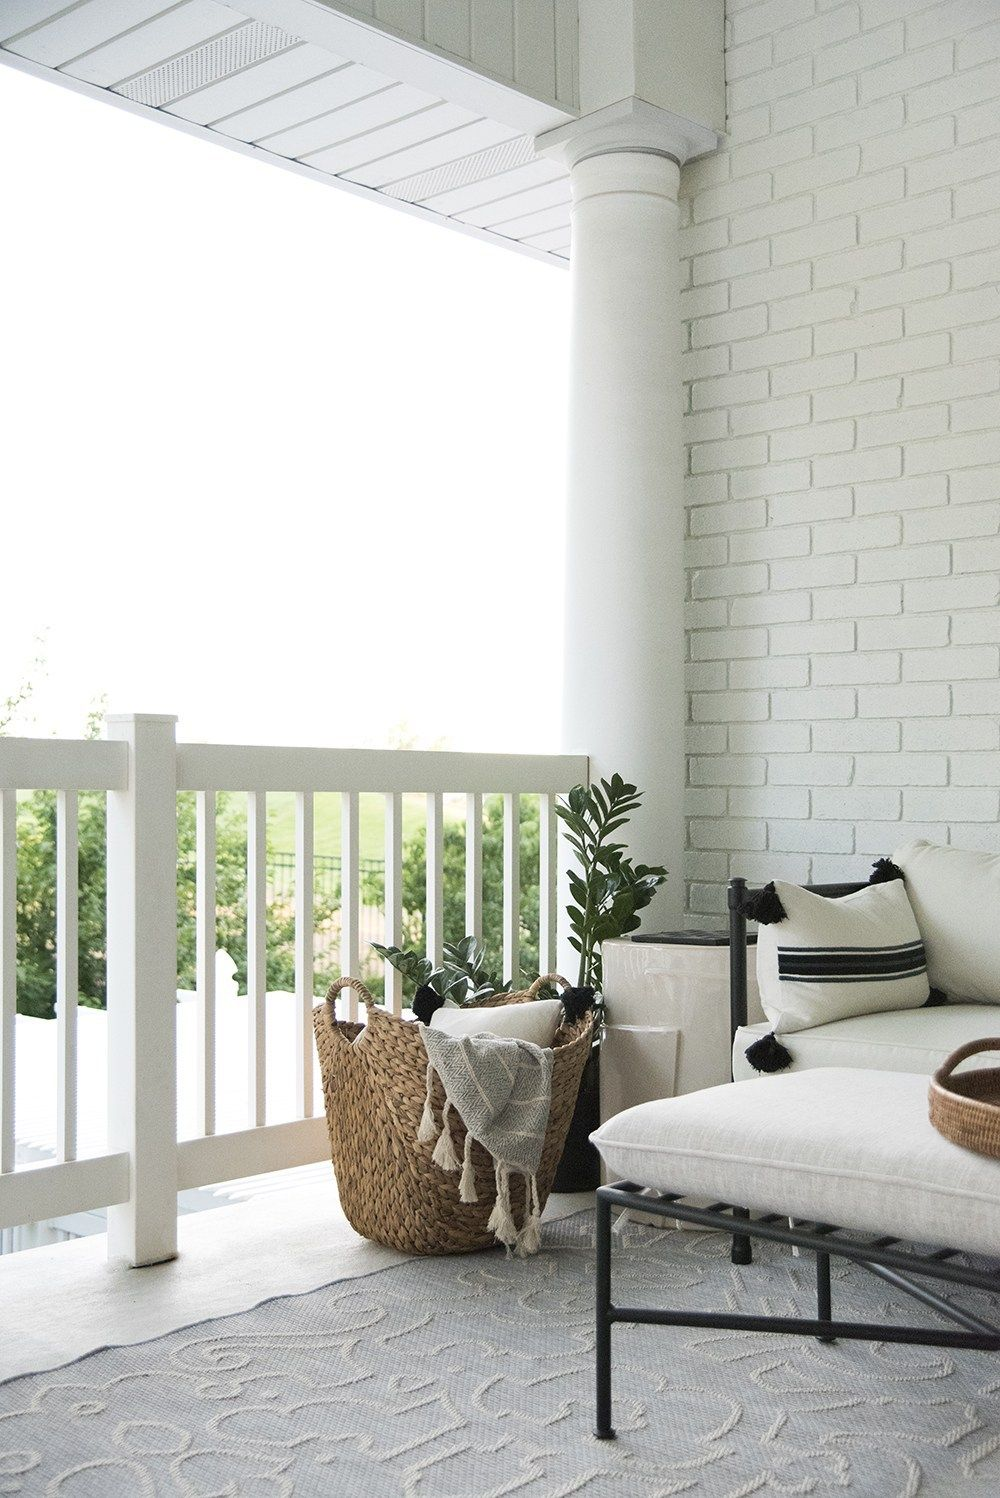 Summer Vignettes Prep For House Guests Small Guest Rooms Home